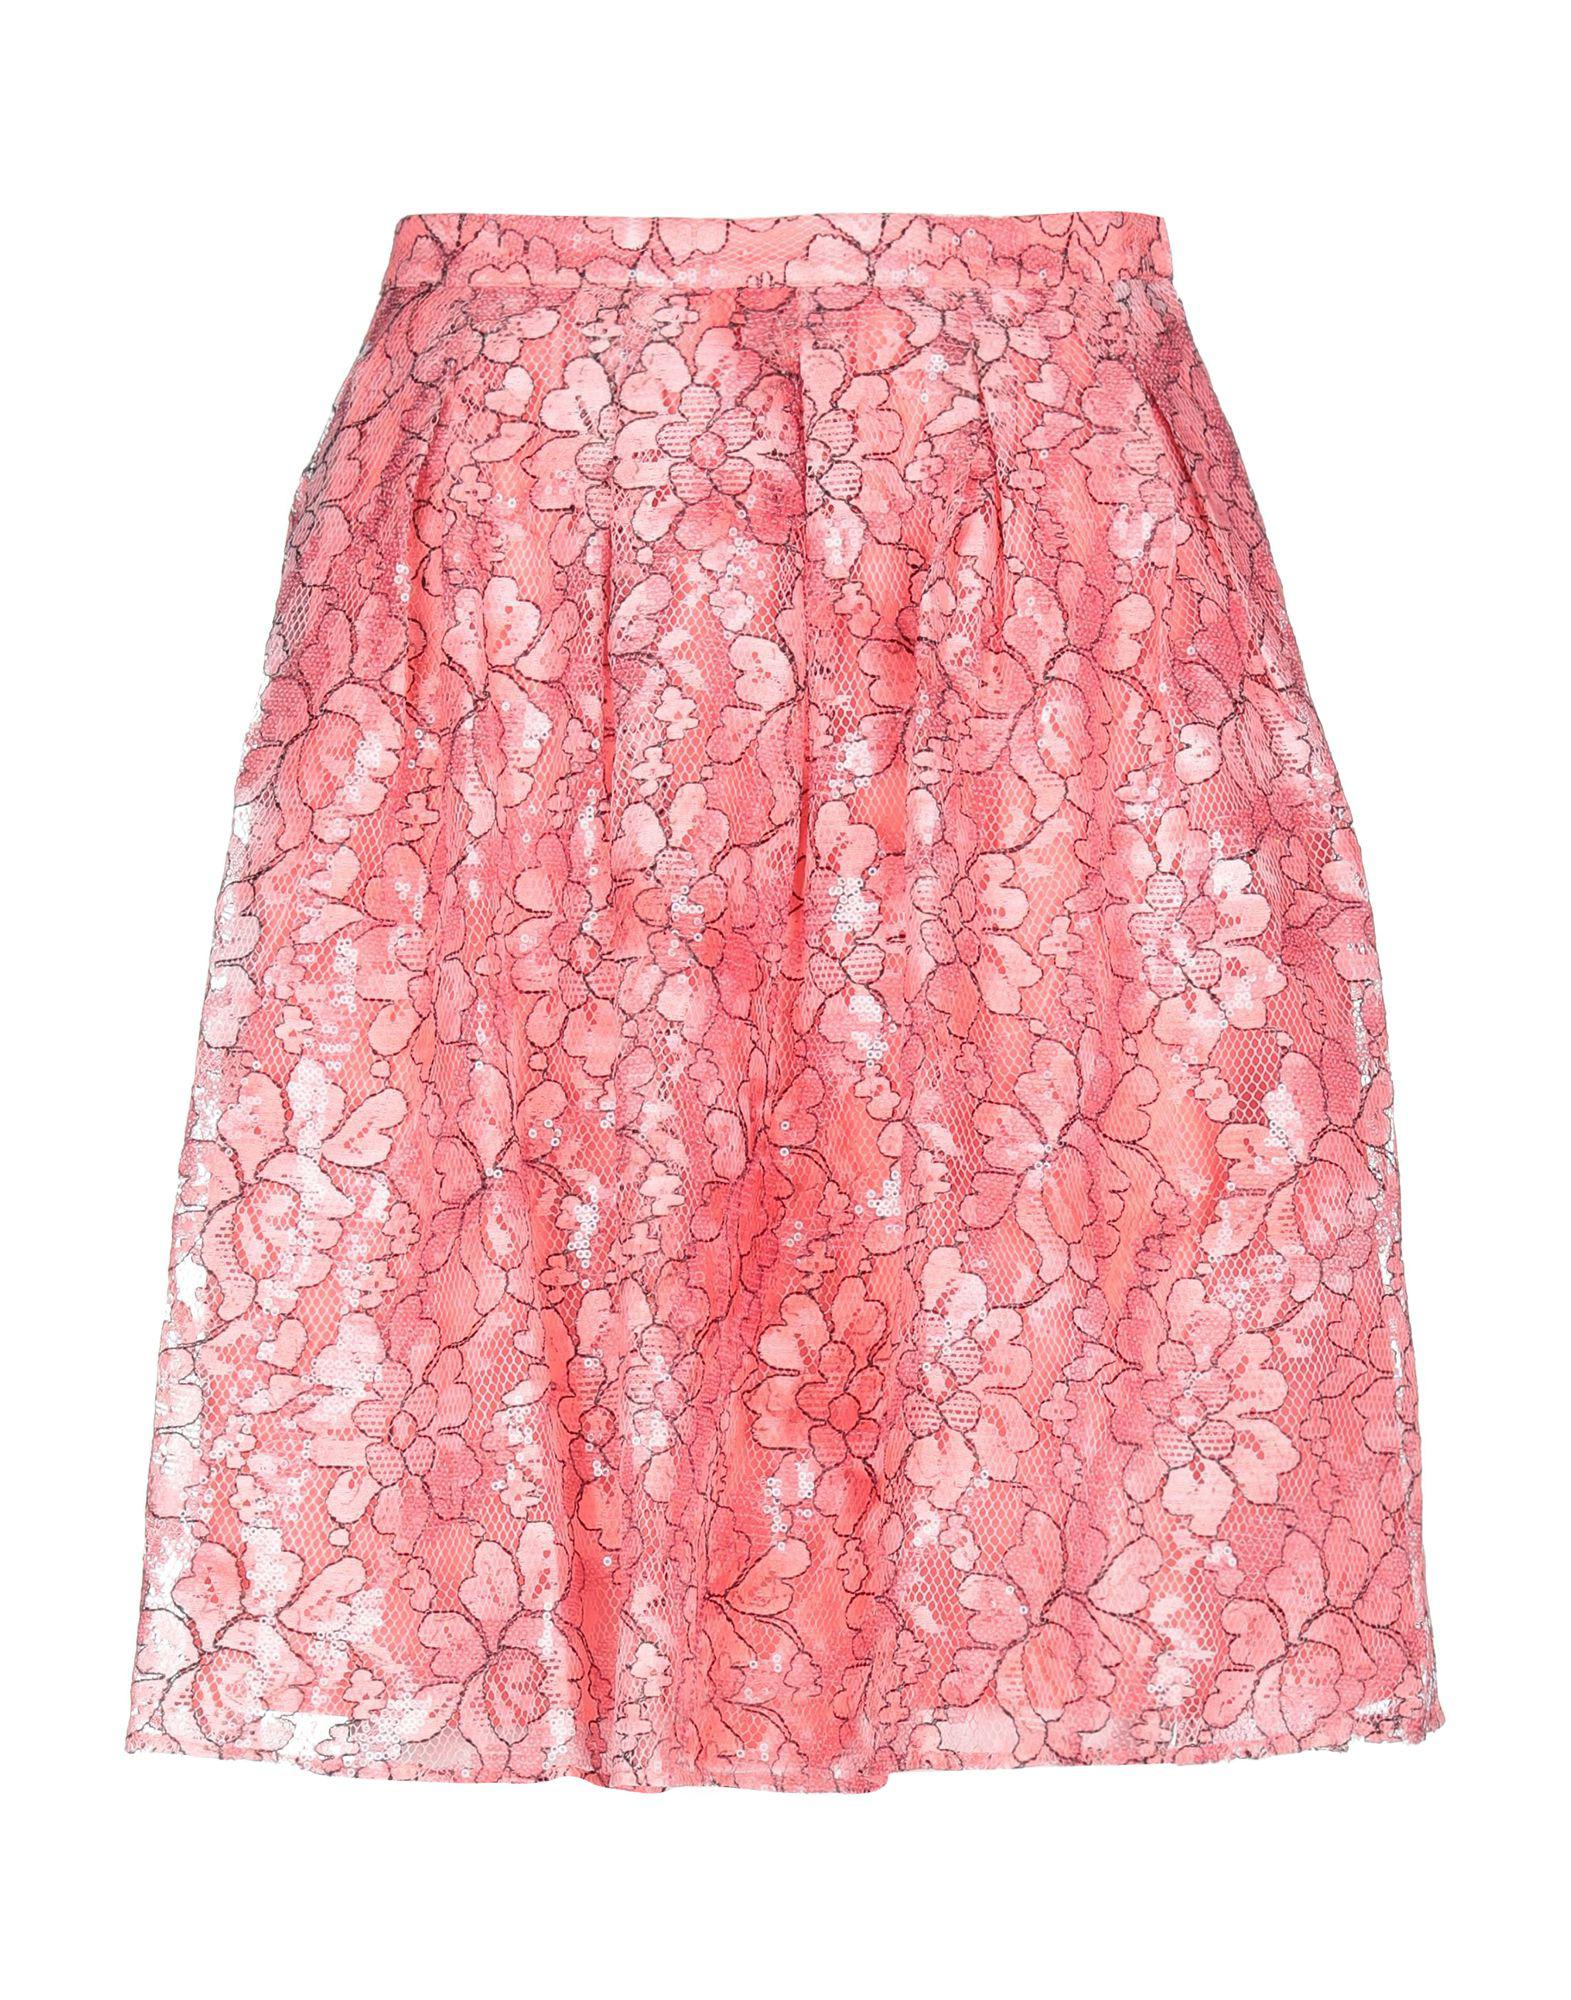 0f9ad65f836a6e guess-Coral-Knee-Length-Skirt.jpeg